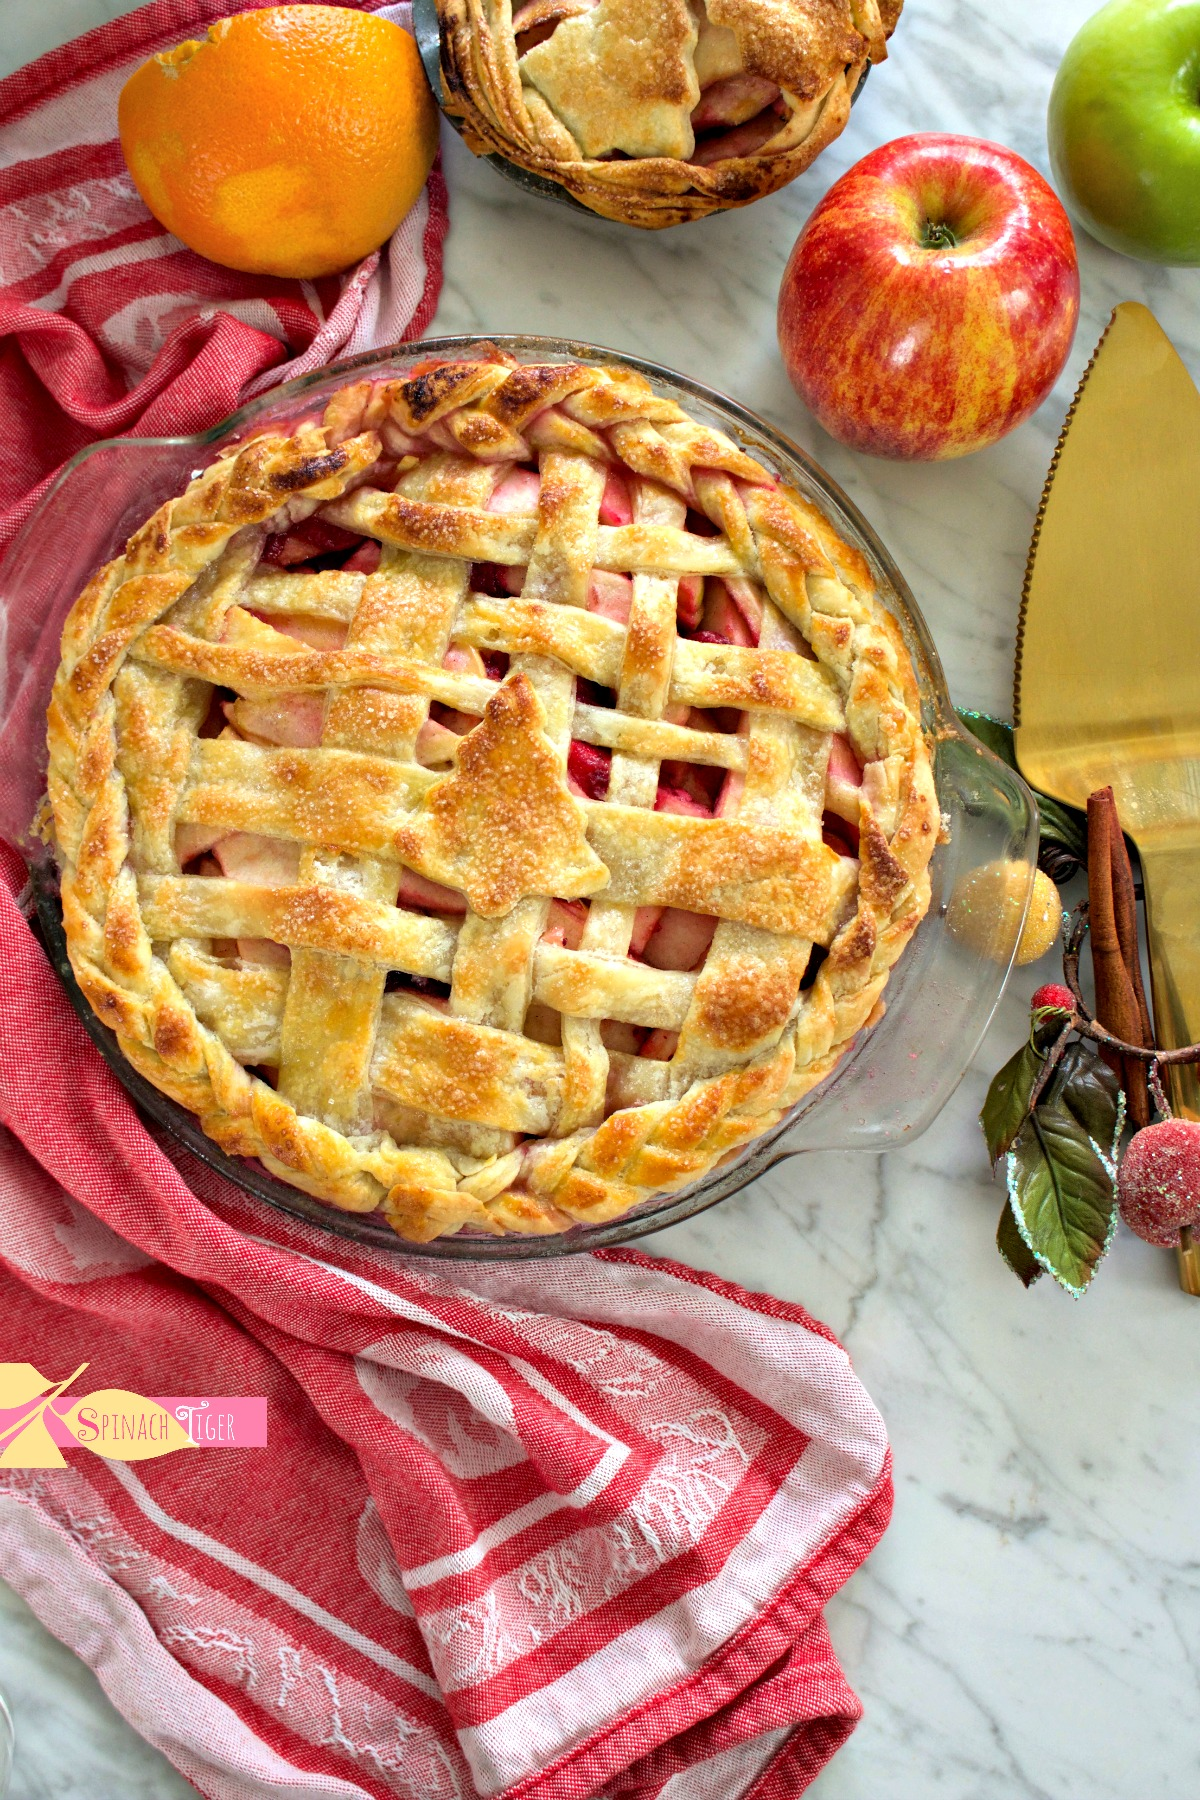 Christmas Apple Pie with decorative pie crust from Spinach Tiger